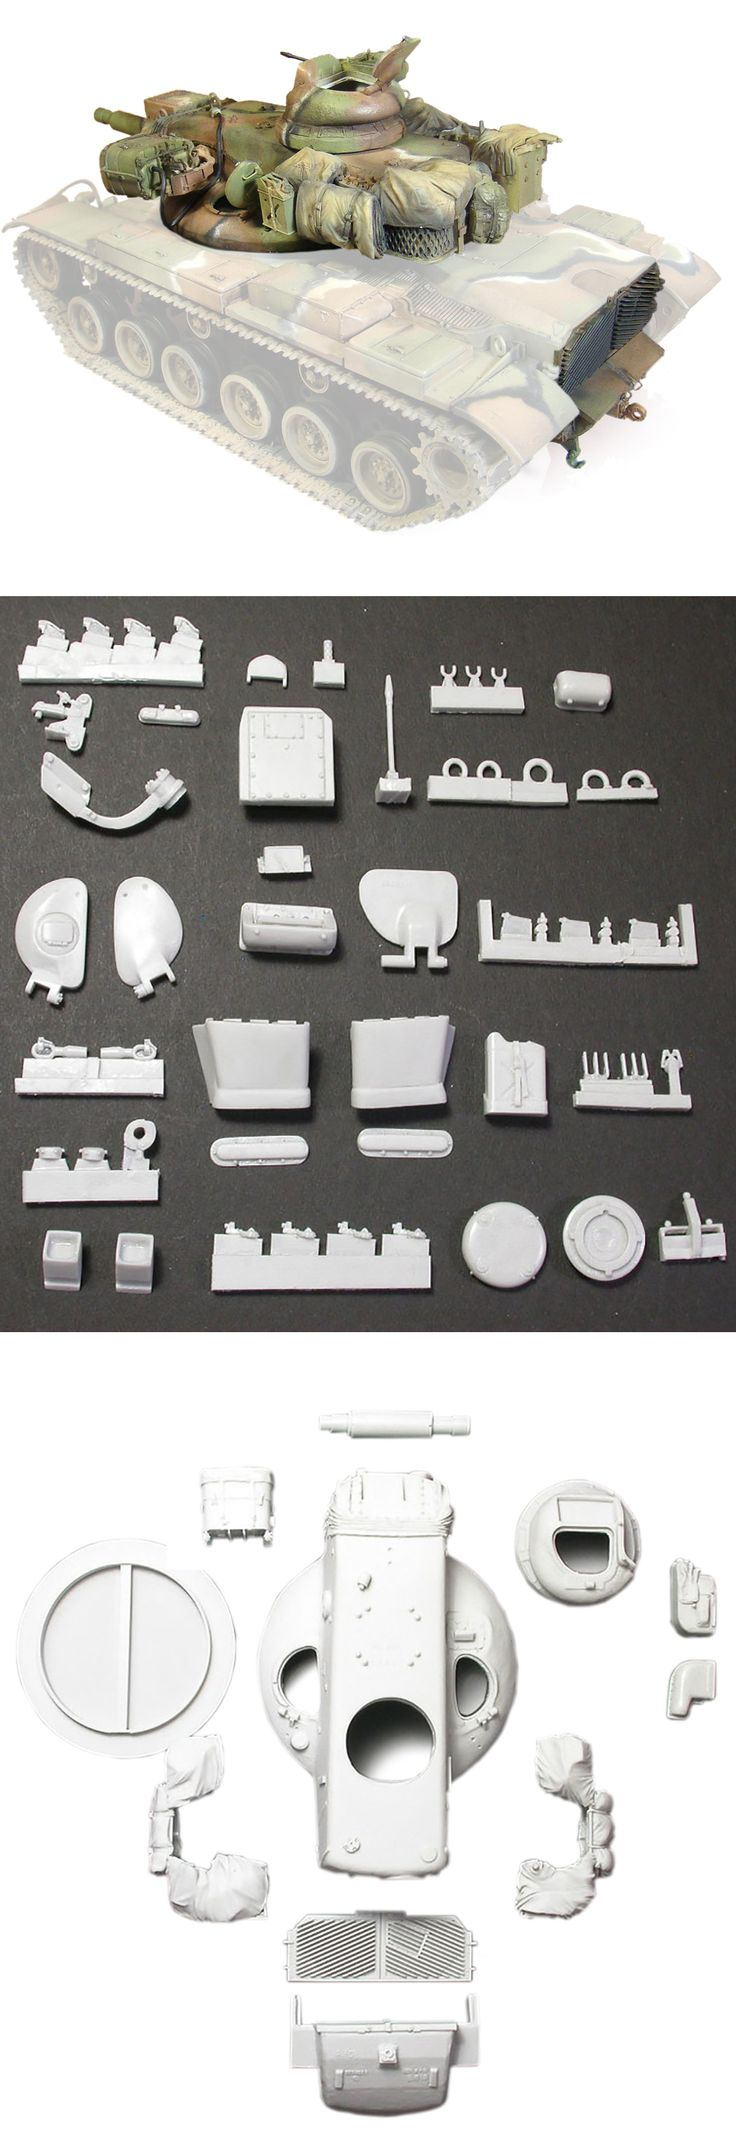 1/35 resincast model U.S. M60A2 Turret & Rear Panel Conversion Kit (for Academy, Tamiya, ESCI)